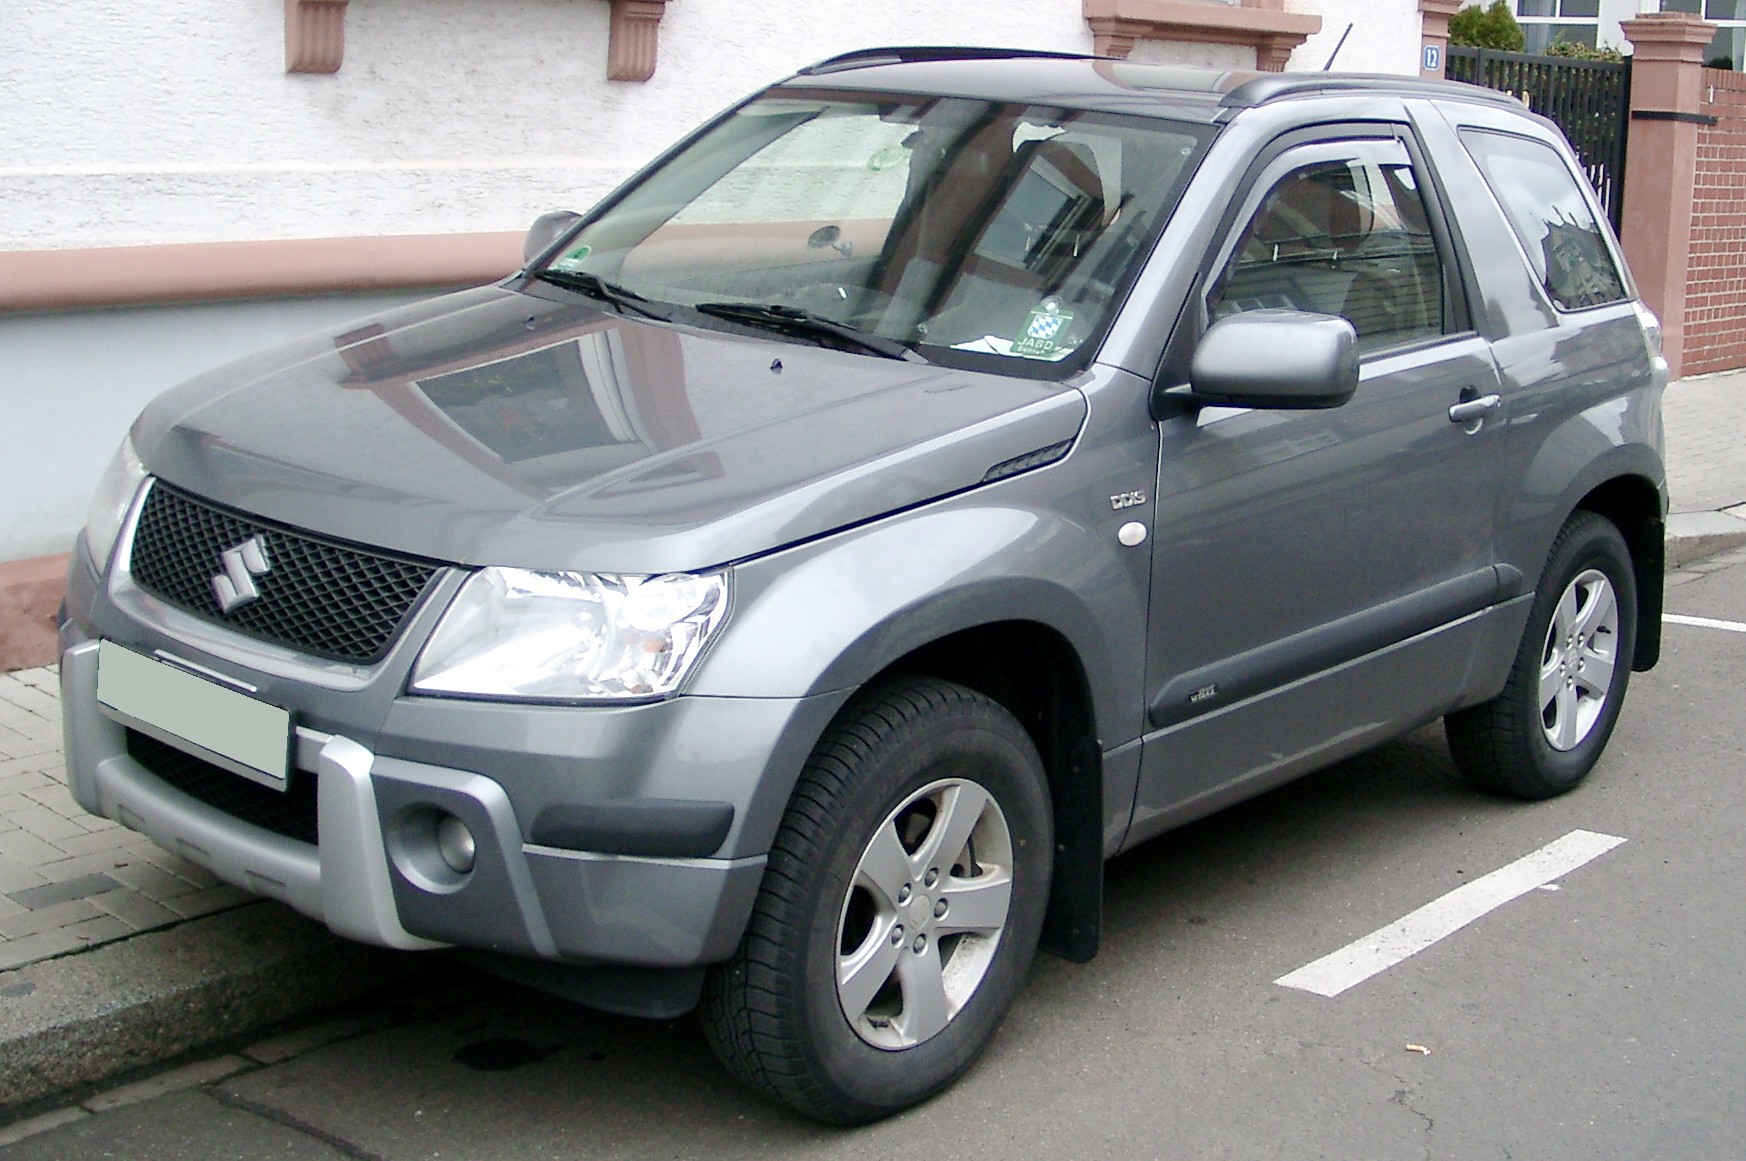 suzuki grand vitara 2007 review amazing pictures and images look at the car. Black Bedroom Furniture Sets. Home Design Ideas